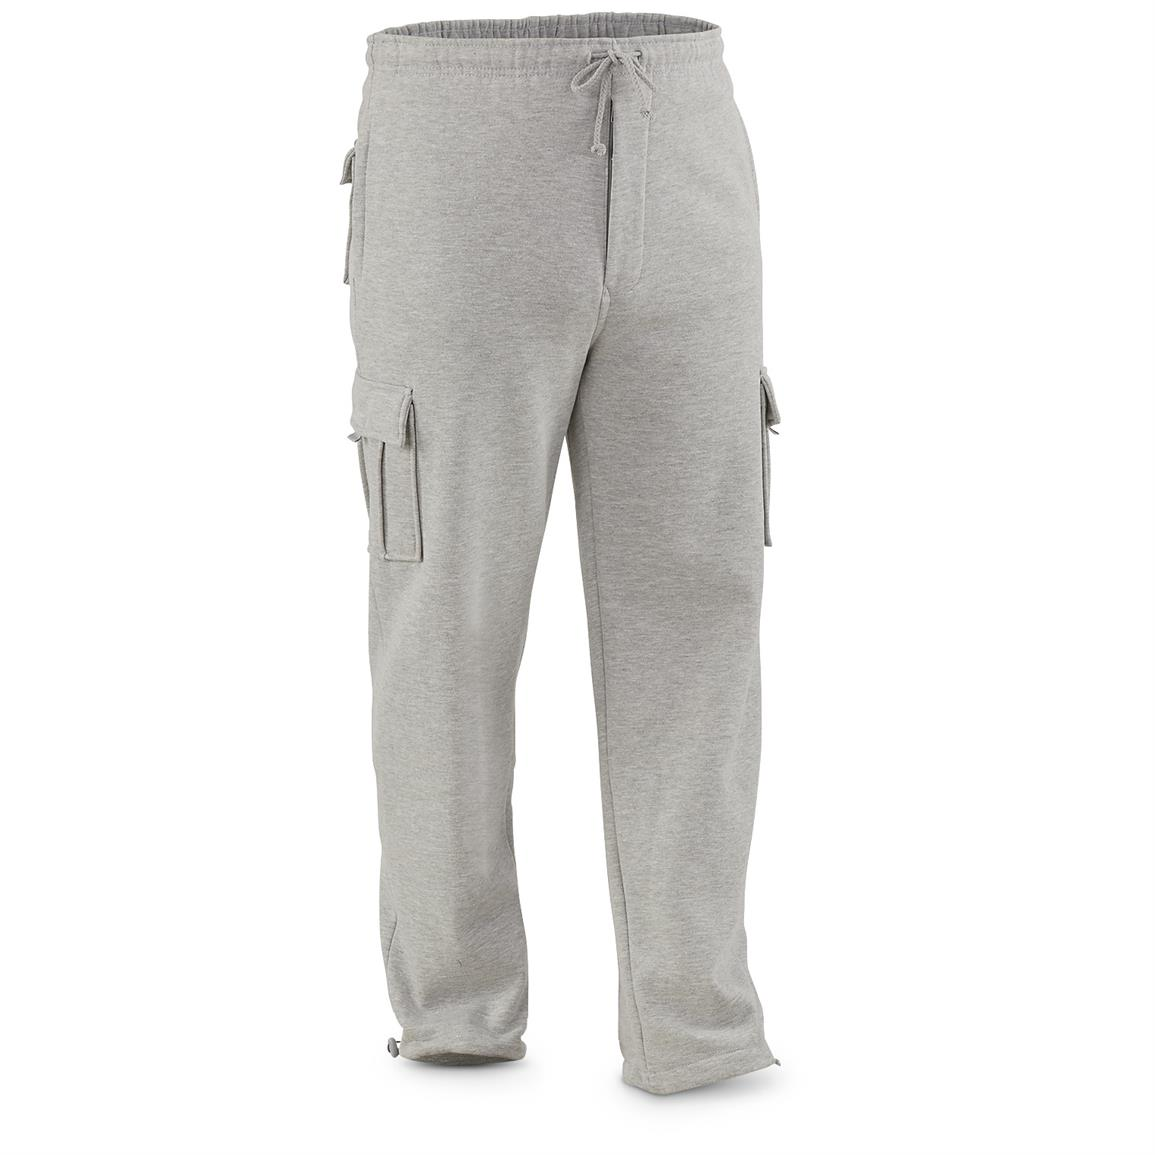 Heavy Duty Mens Sweatpants